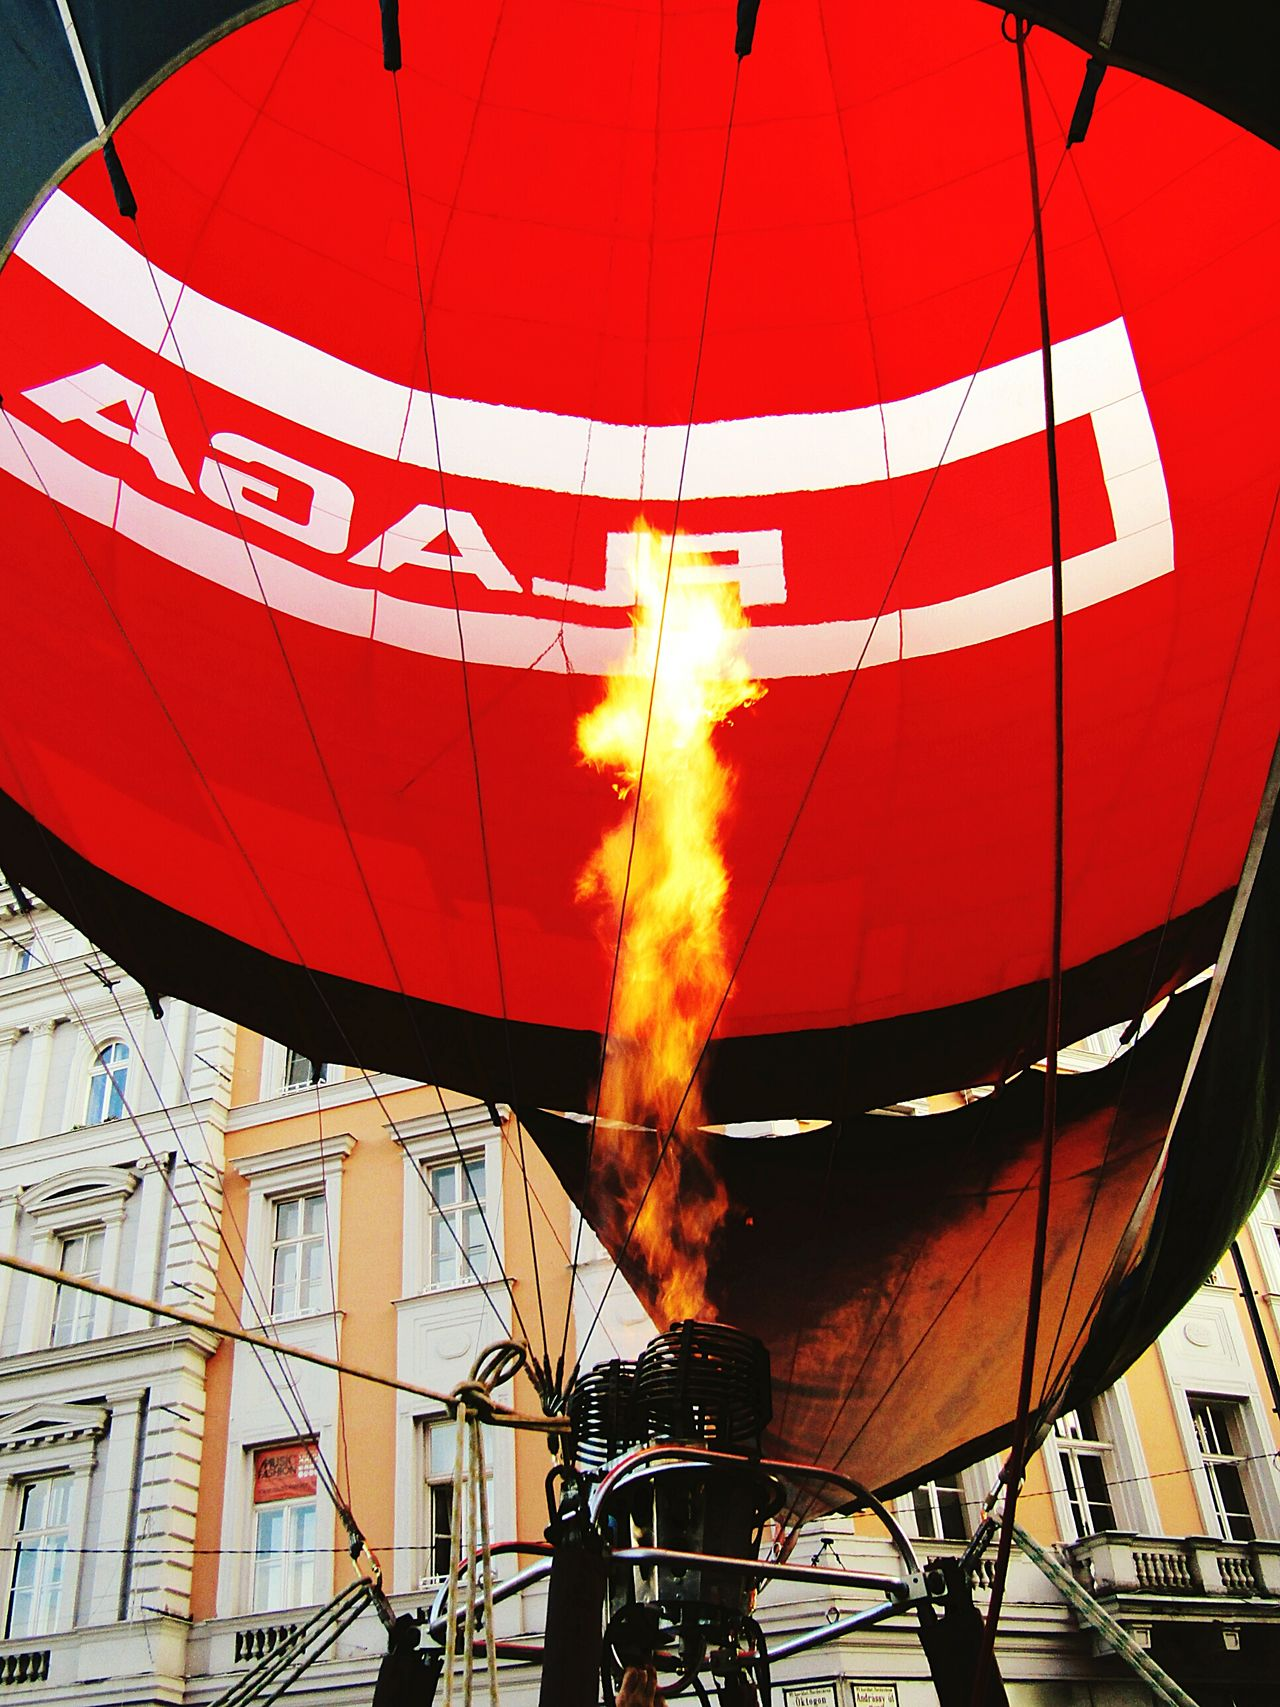 Fire Closeupshot Red Firephotography Balloon Hotairballoon Taking Photos Streetphotography EyeEmbestshots Fine Art Photography Todayphotography Eyeemcollection From My Point Of View Eye4photography  Festival Fly Flying Budapest Hungary